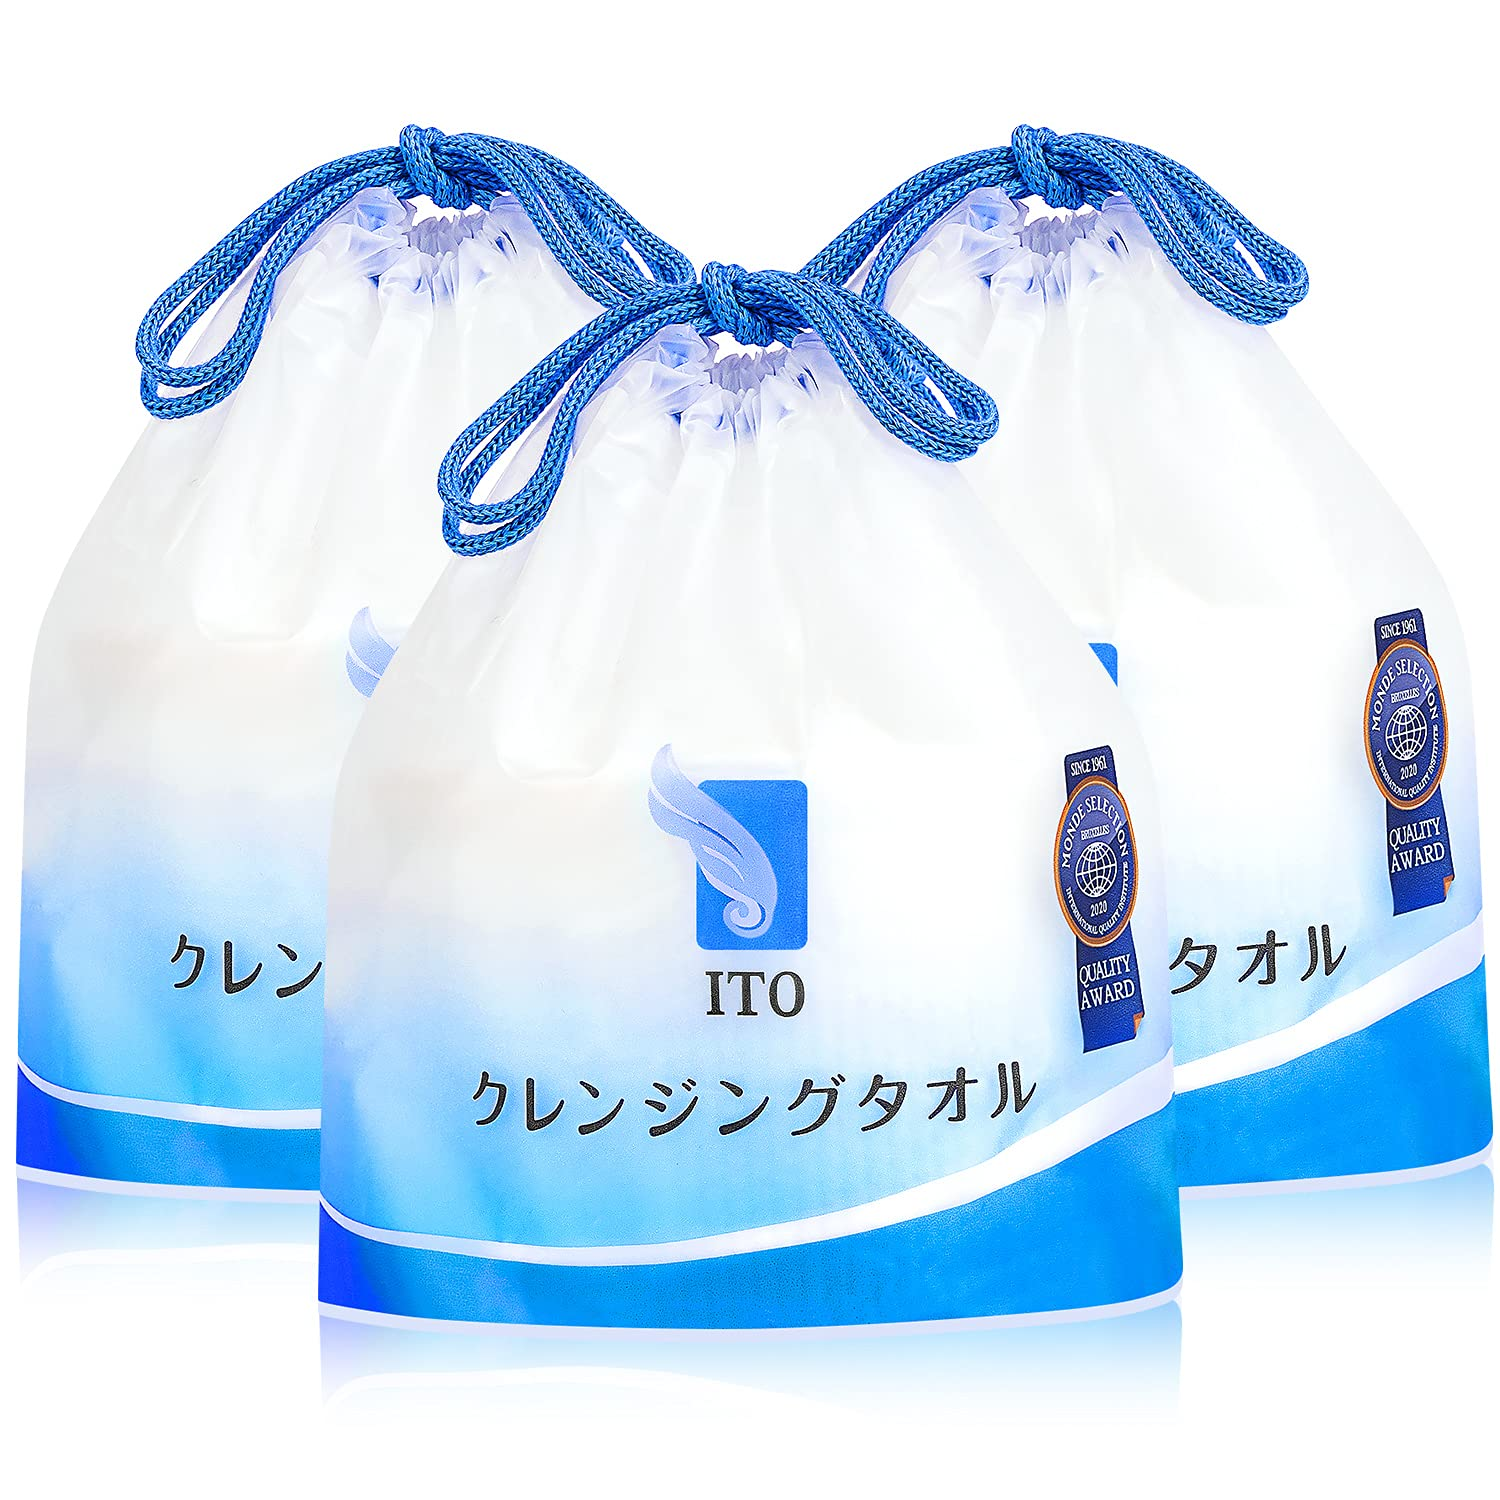 ITO Disposable Face Towel 240 Biodegradable Count Now free shipping Facial Limited time cheap sale Tissue